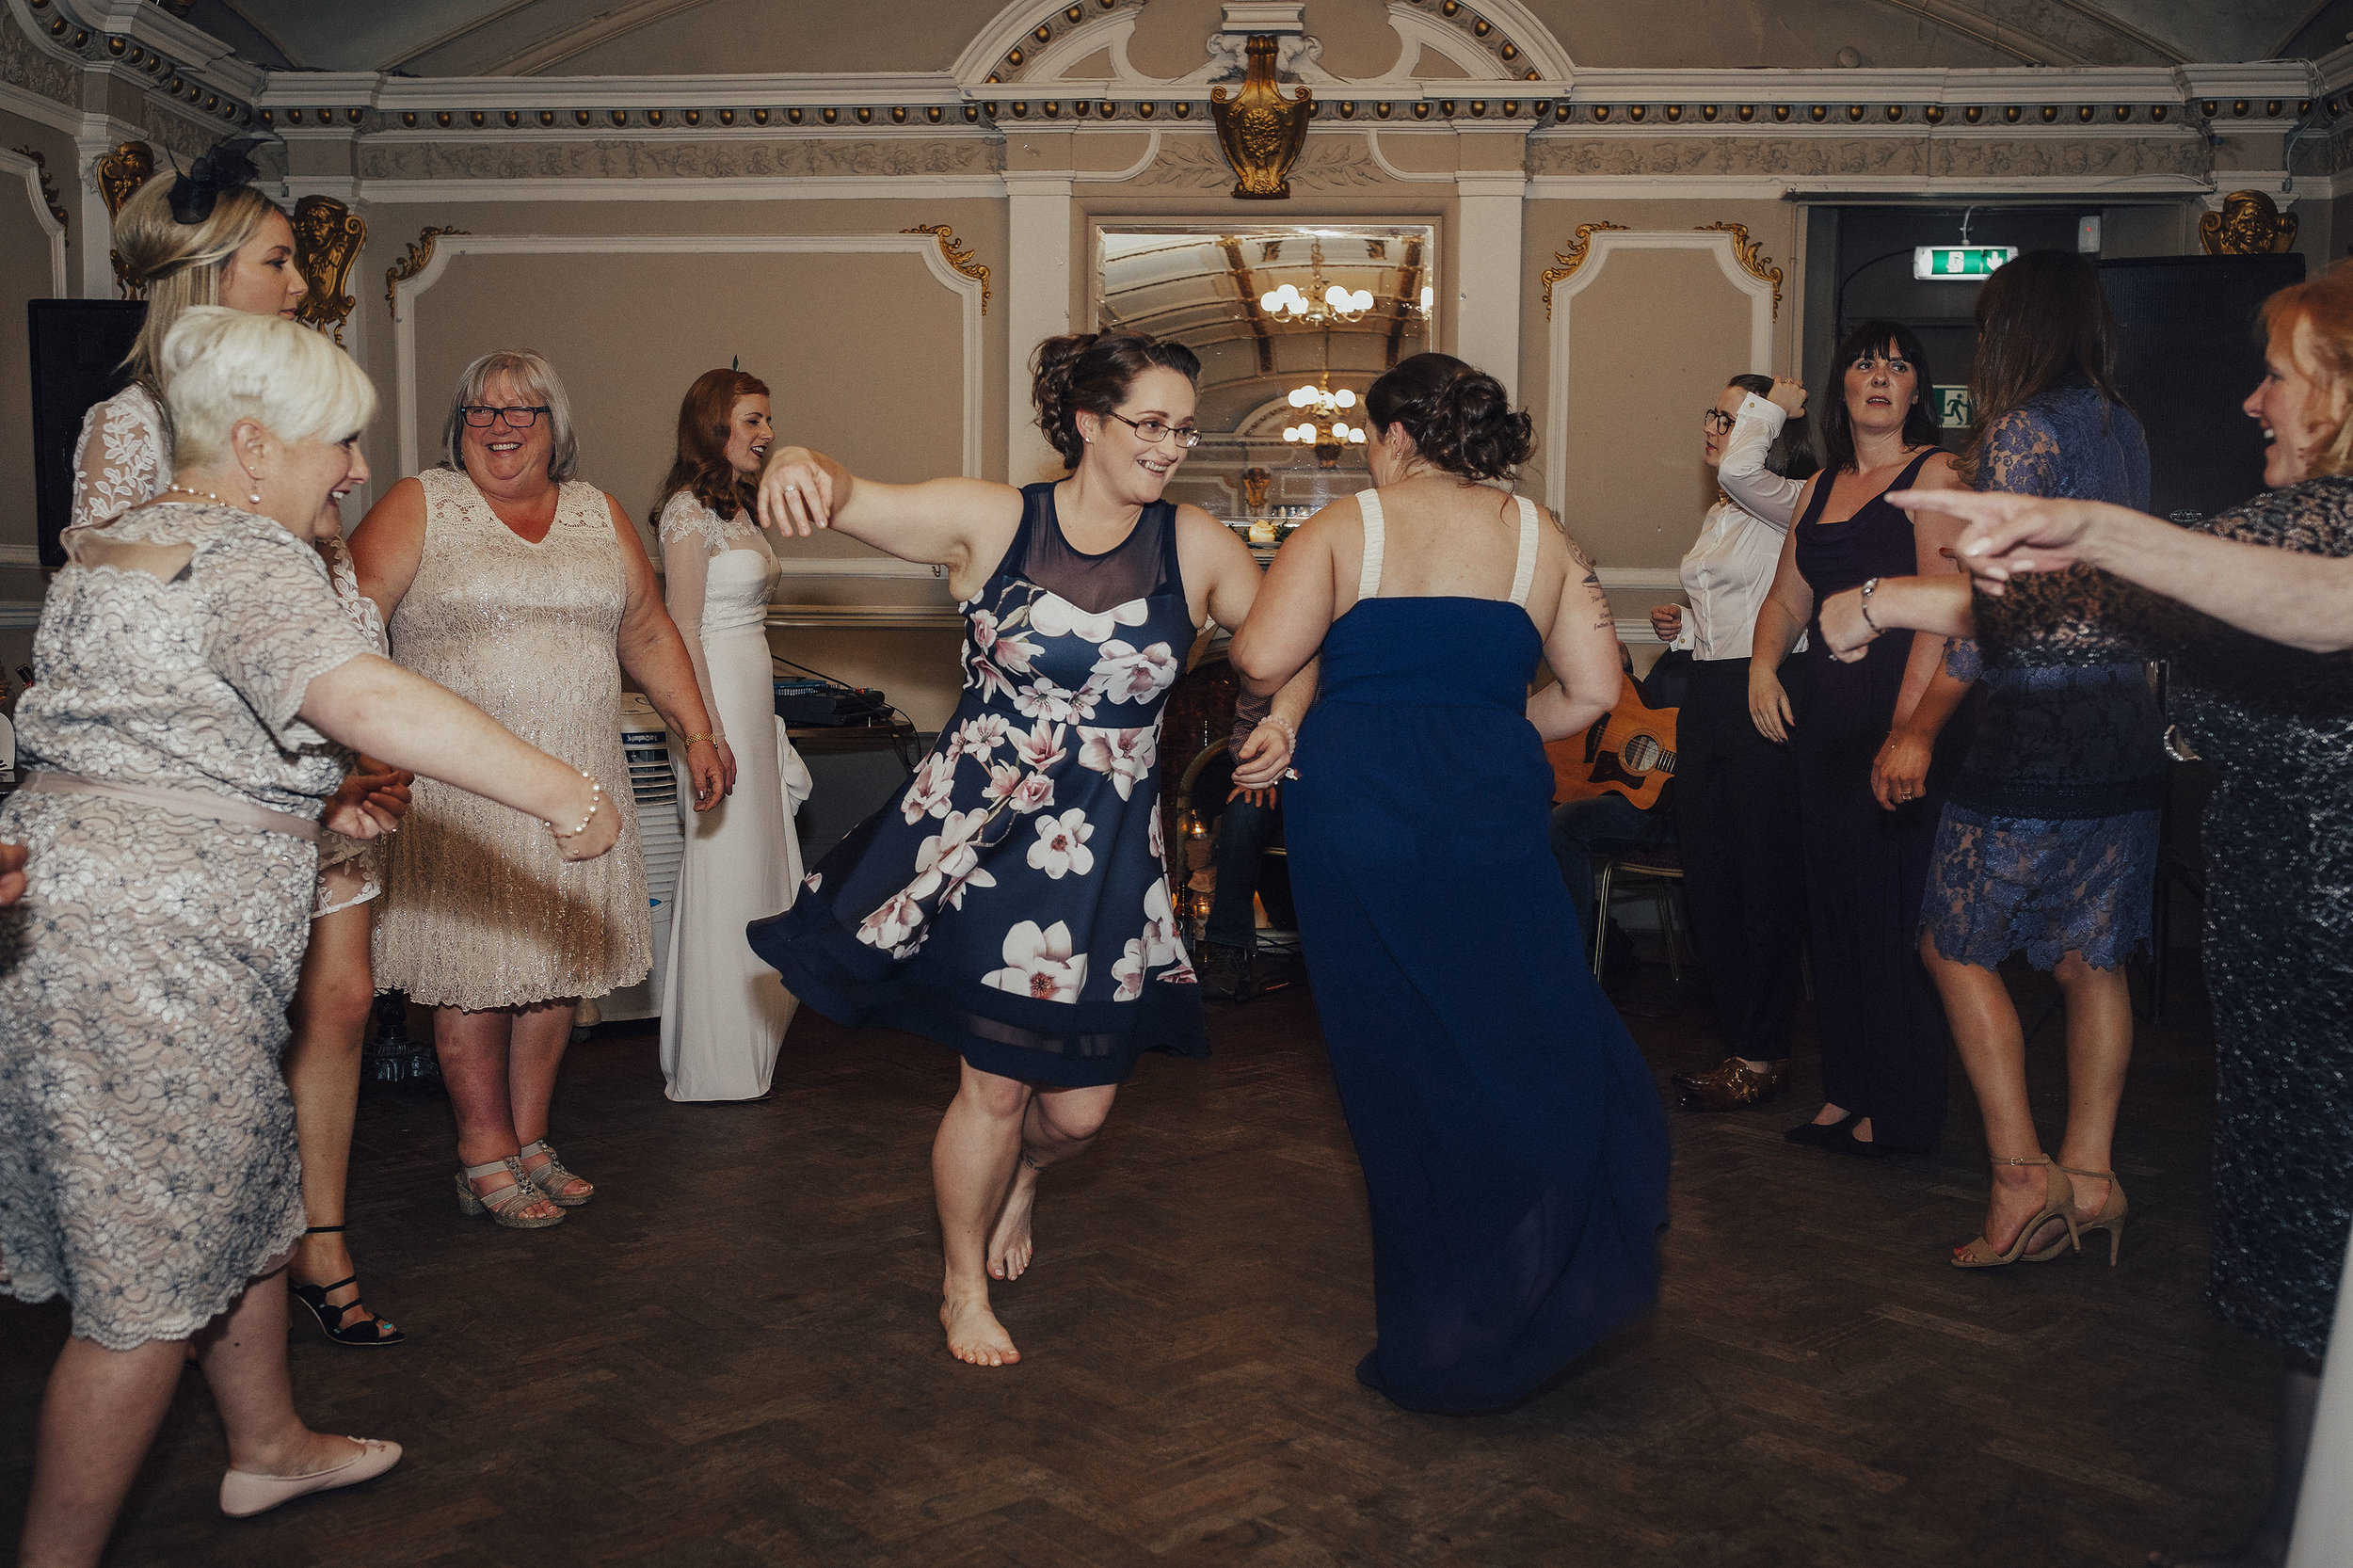 SAME_SEX_WEDDING_PHOTOGRAPHER_SLOANS_GLASGOW_PJ_PHILLIPS_PHOTOGRAPHY_101.jpg